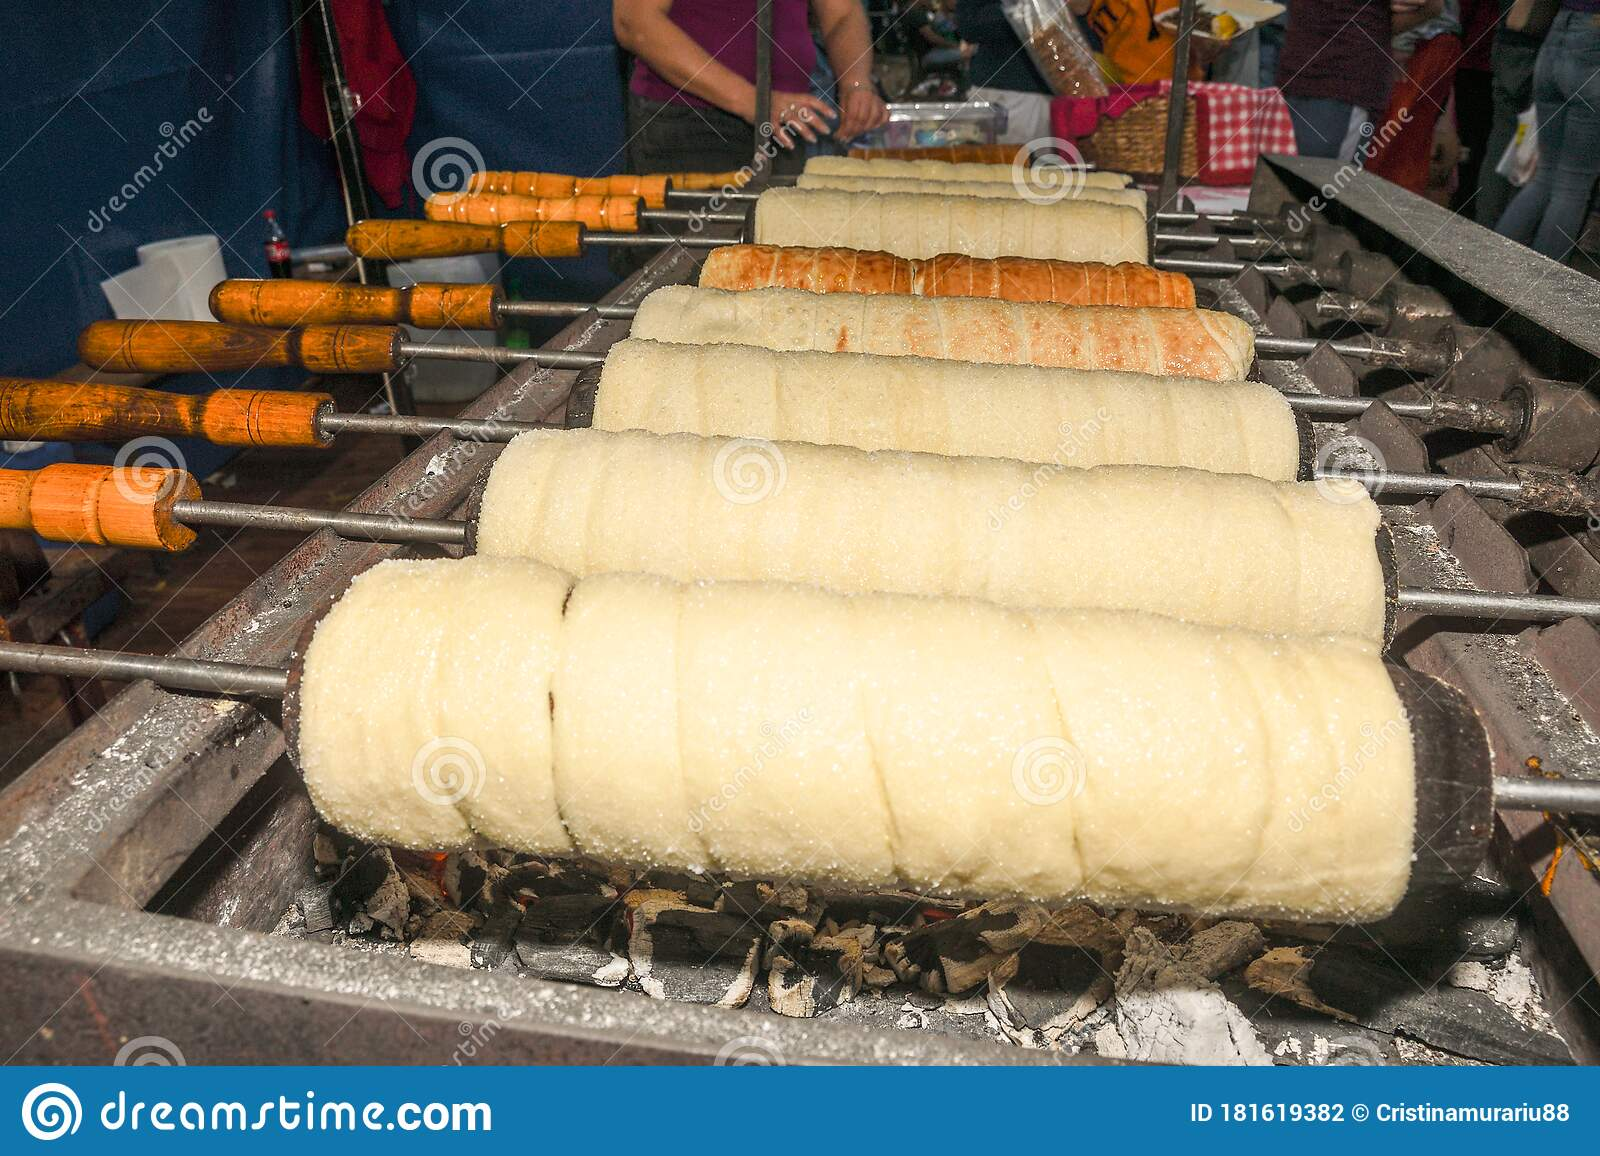 Kurtos Kalacs Or Chimney Cakes Preparing Cooking On Charcoal Grill Stock Photo Image Of Baked Dessert 181619382